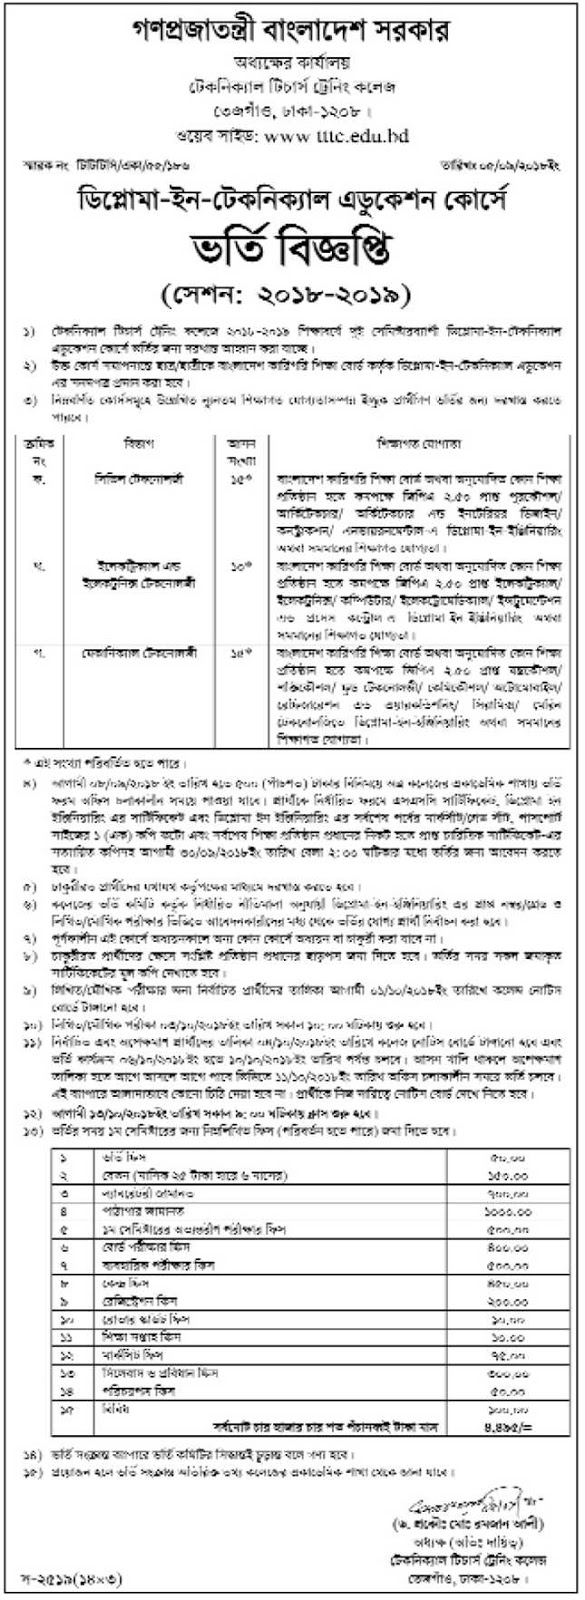 Diploma-in-Technical Education Admission Circular 2018-2019